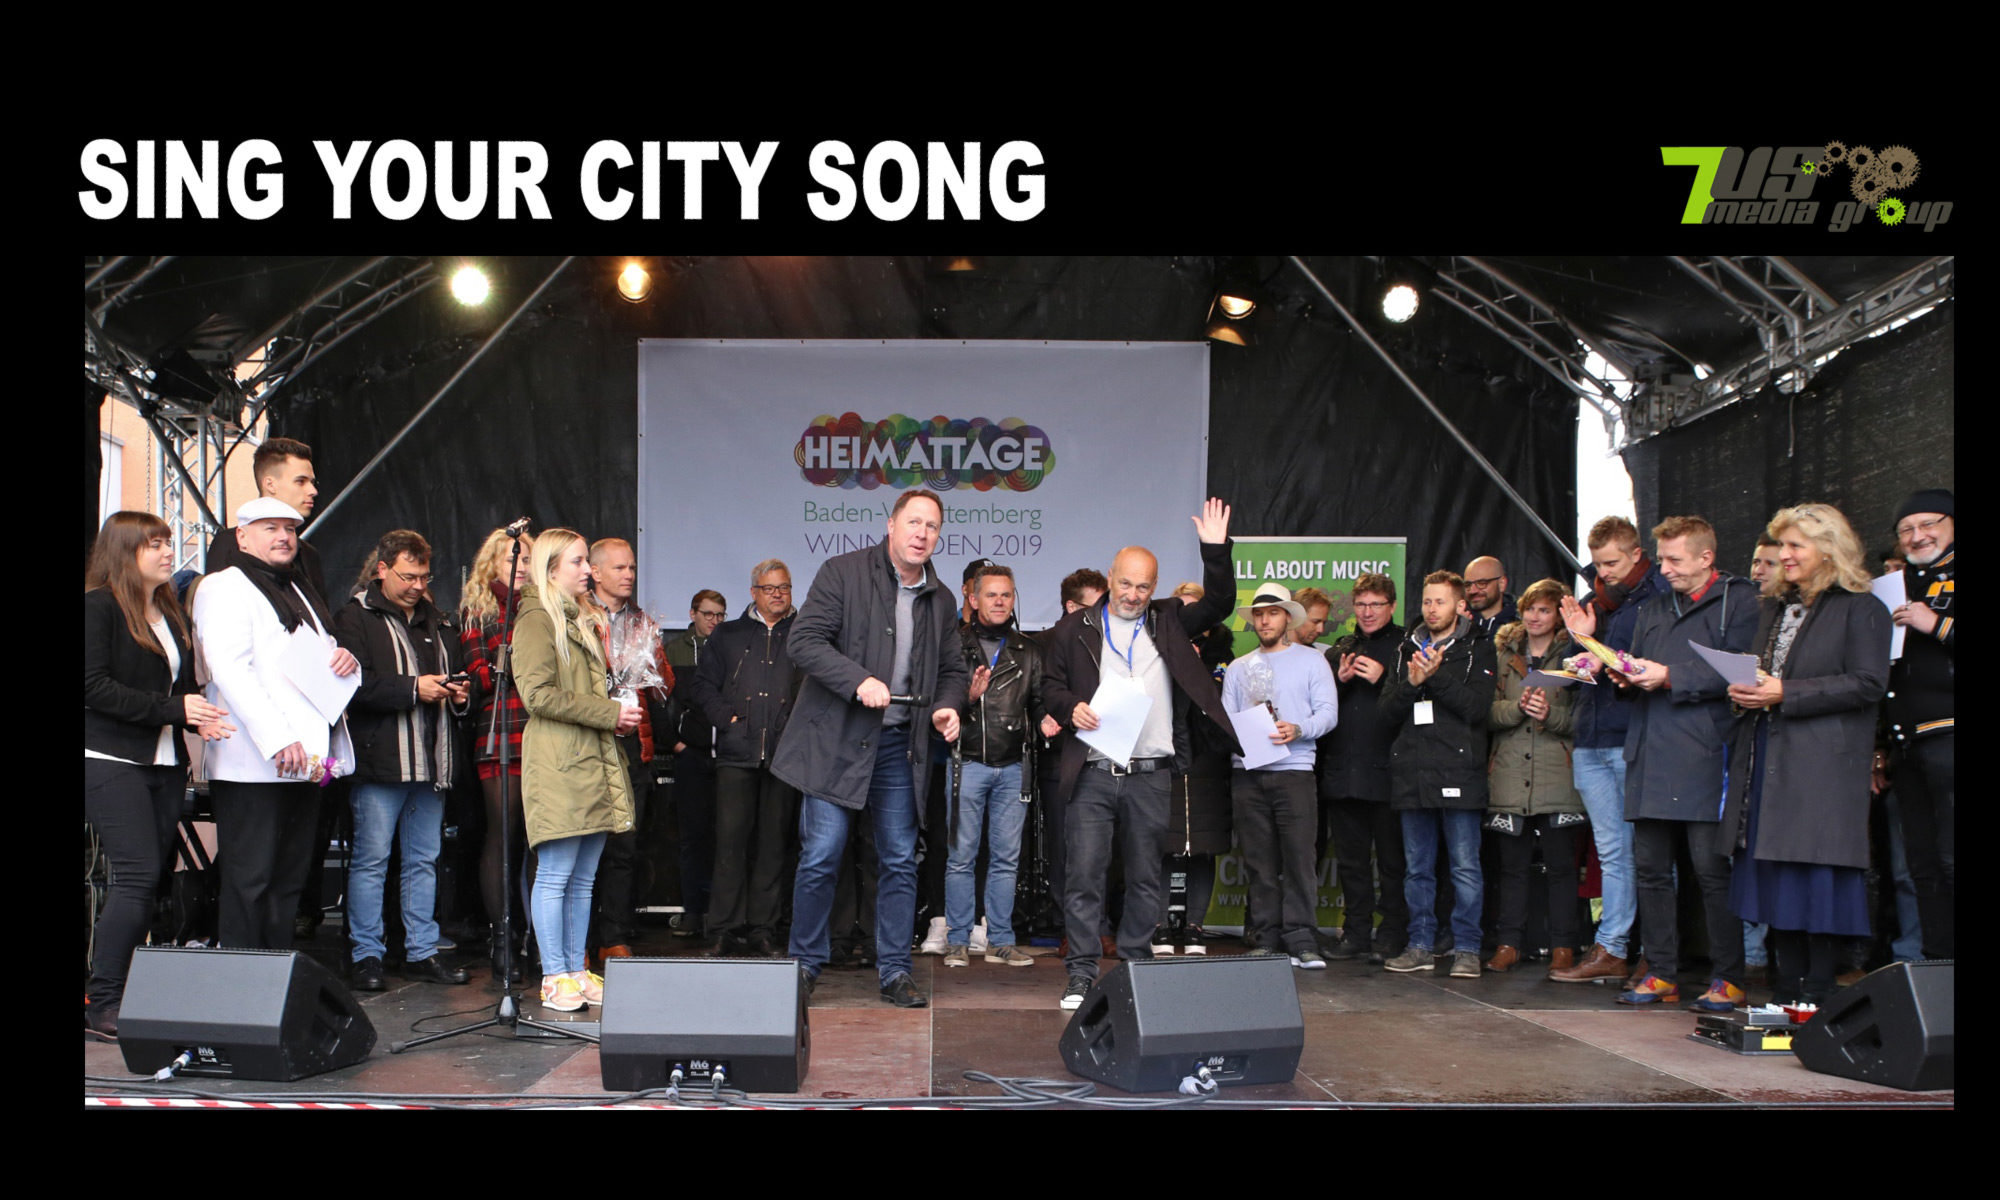 Sing Your City Song